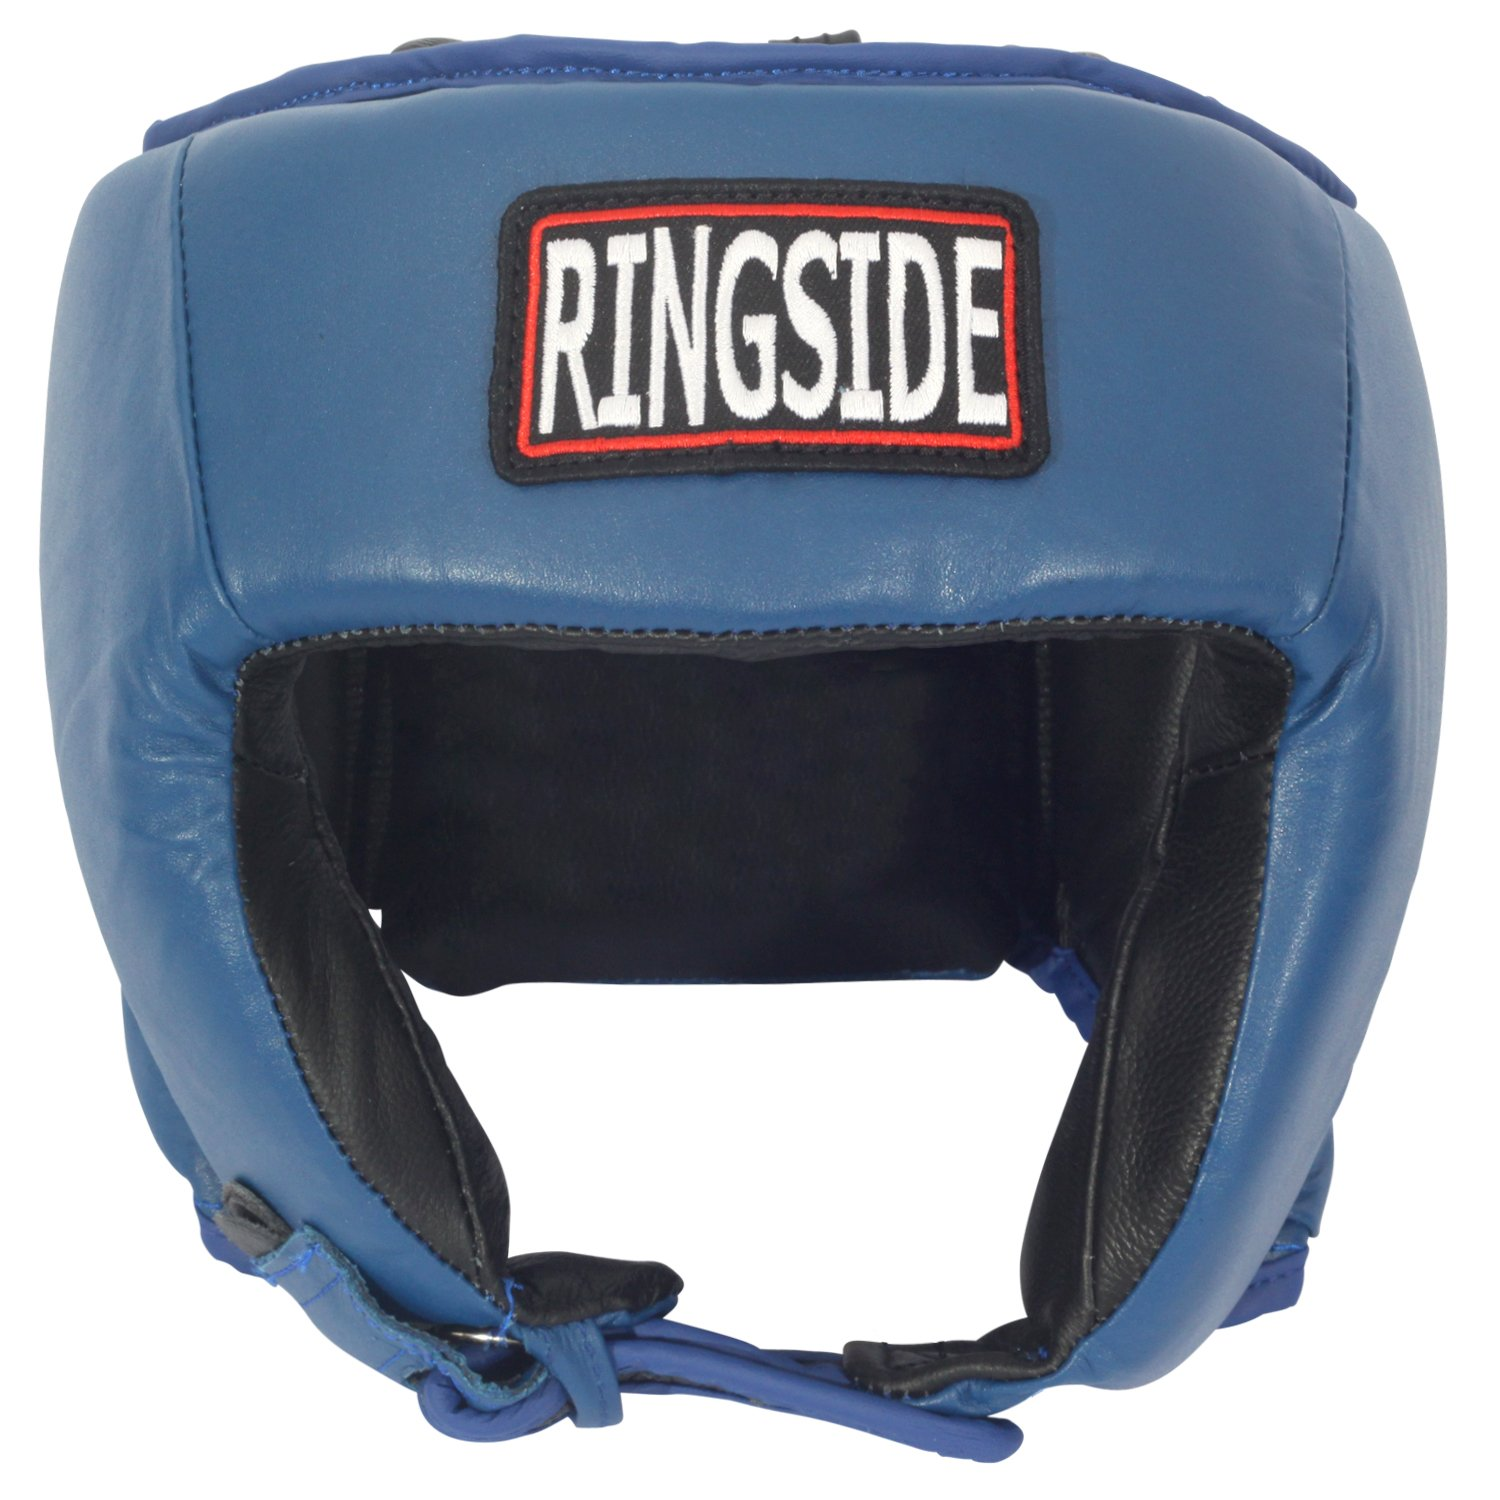 Ringside Competition Boxing Muay Thai MMA Sparring Head Protection Headgear Without Cheeks